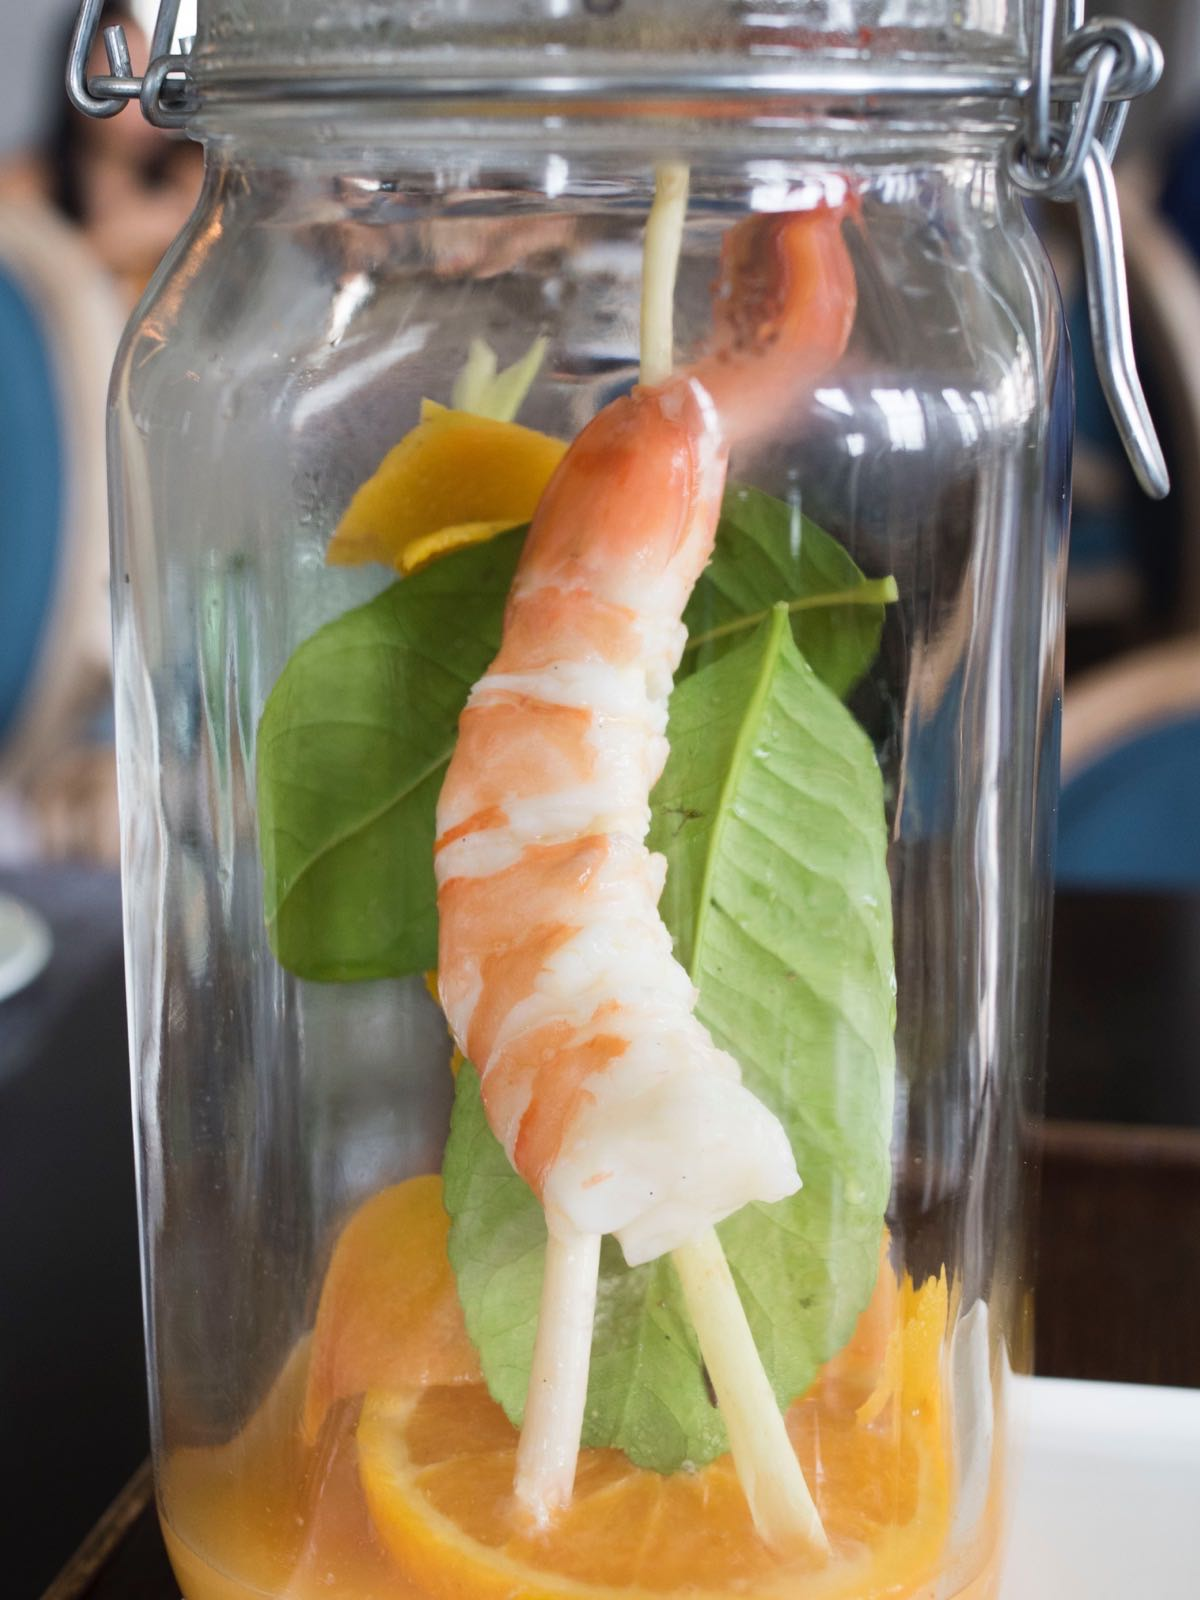 Not your usual prawn on a stick